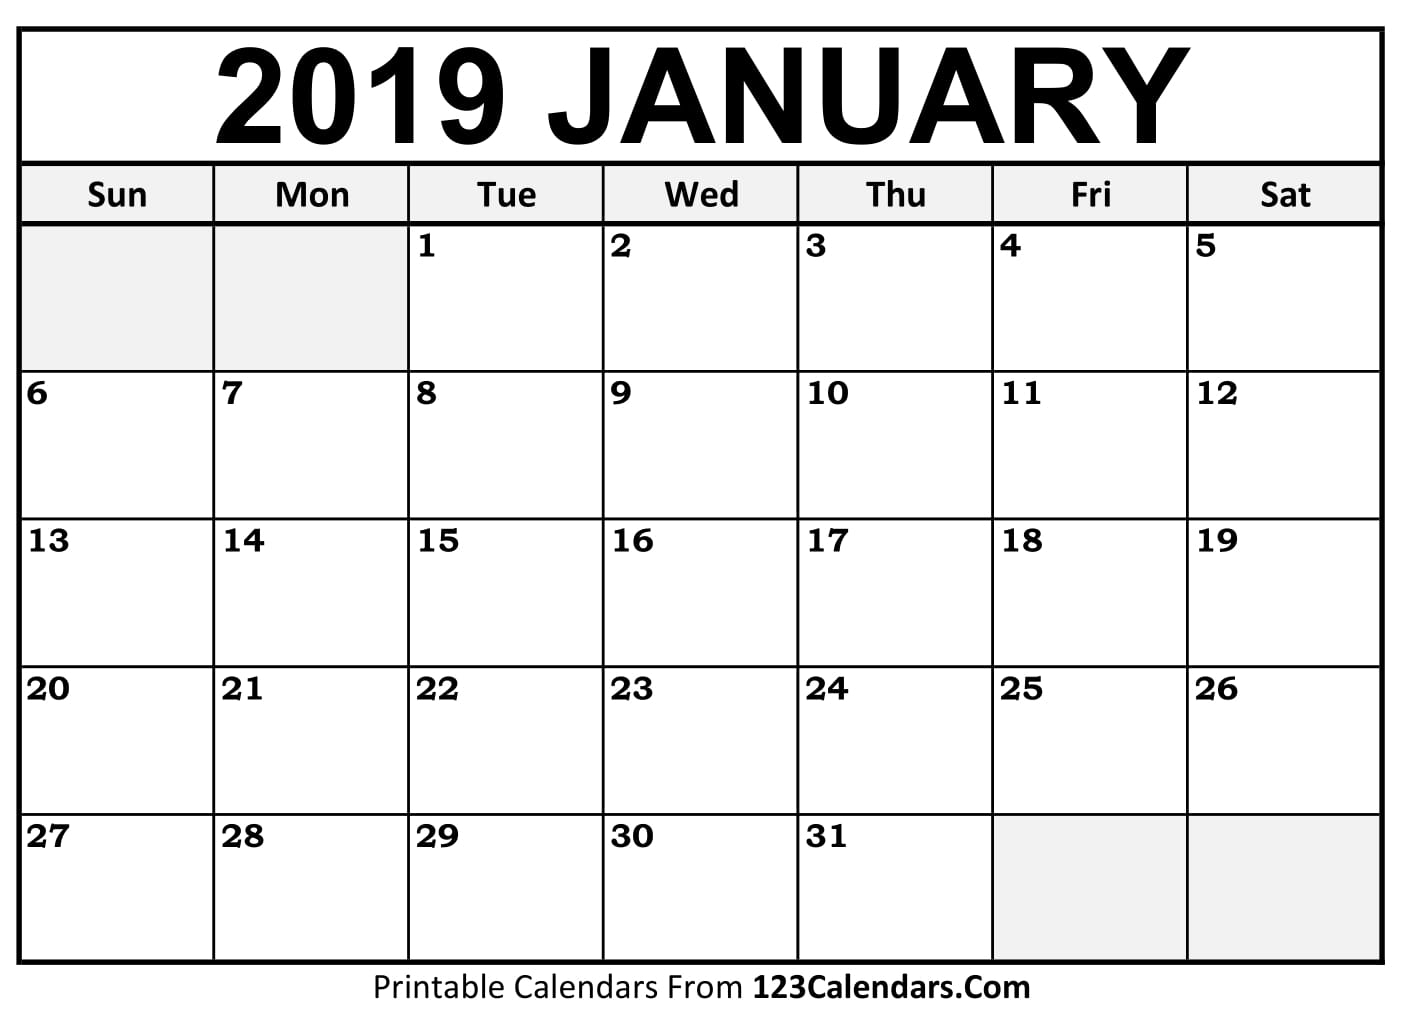 Free Printable Calendar | 123Calendars within Calendar For 2019 And 2020 To Edit